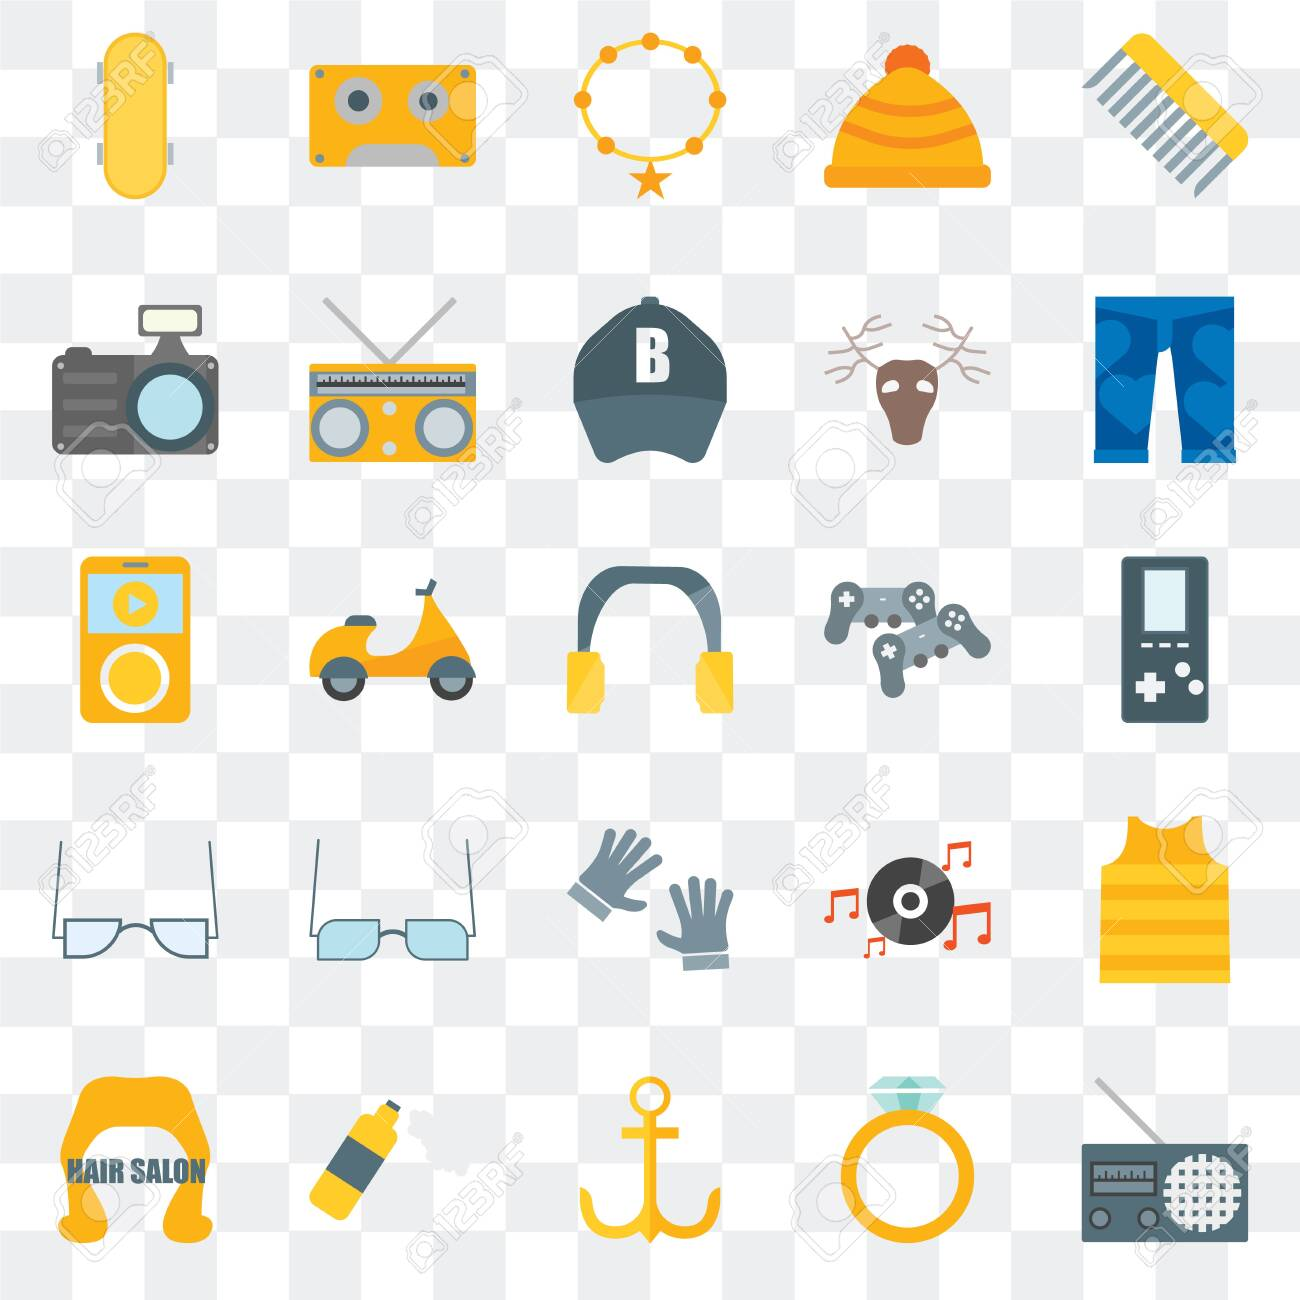 Set Of 25 transparent icons such as Radio, Accesory, Anchor, Foam, Hair salon, Clothing, Gamepad, Accessory, Photo camera, Music player, web UI transparency icon pack - 130332468